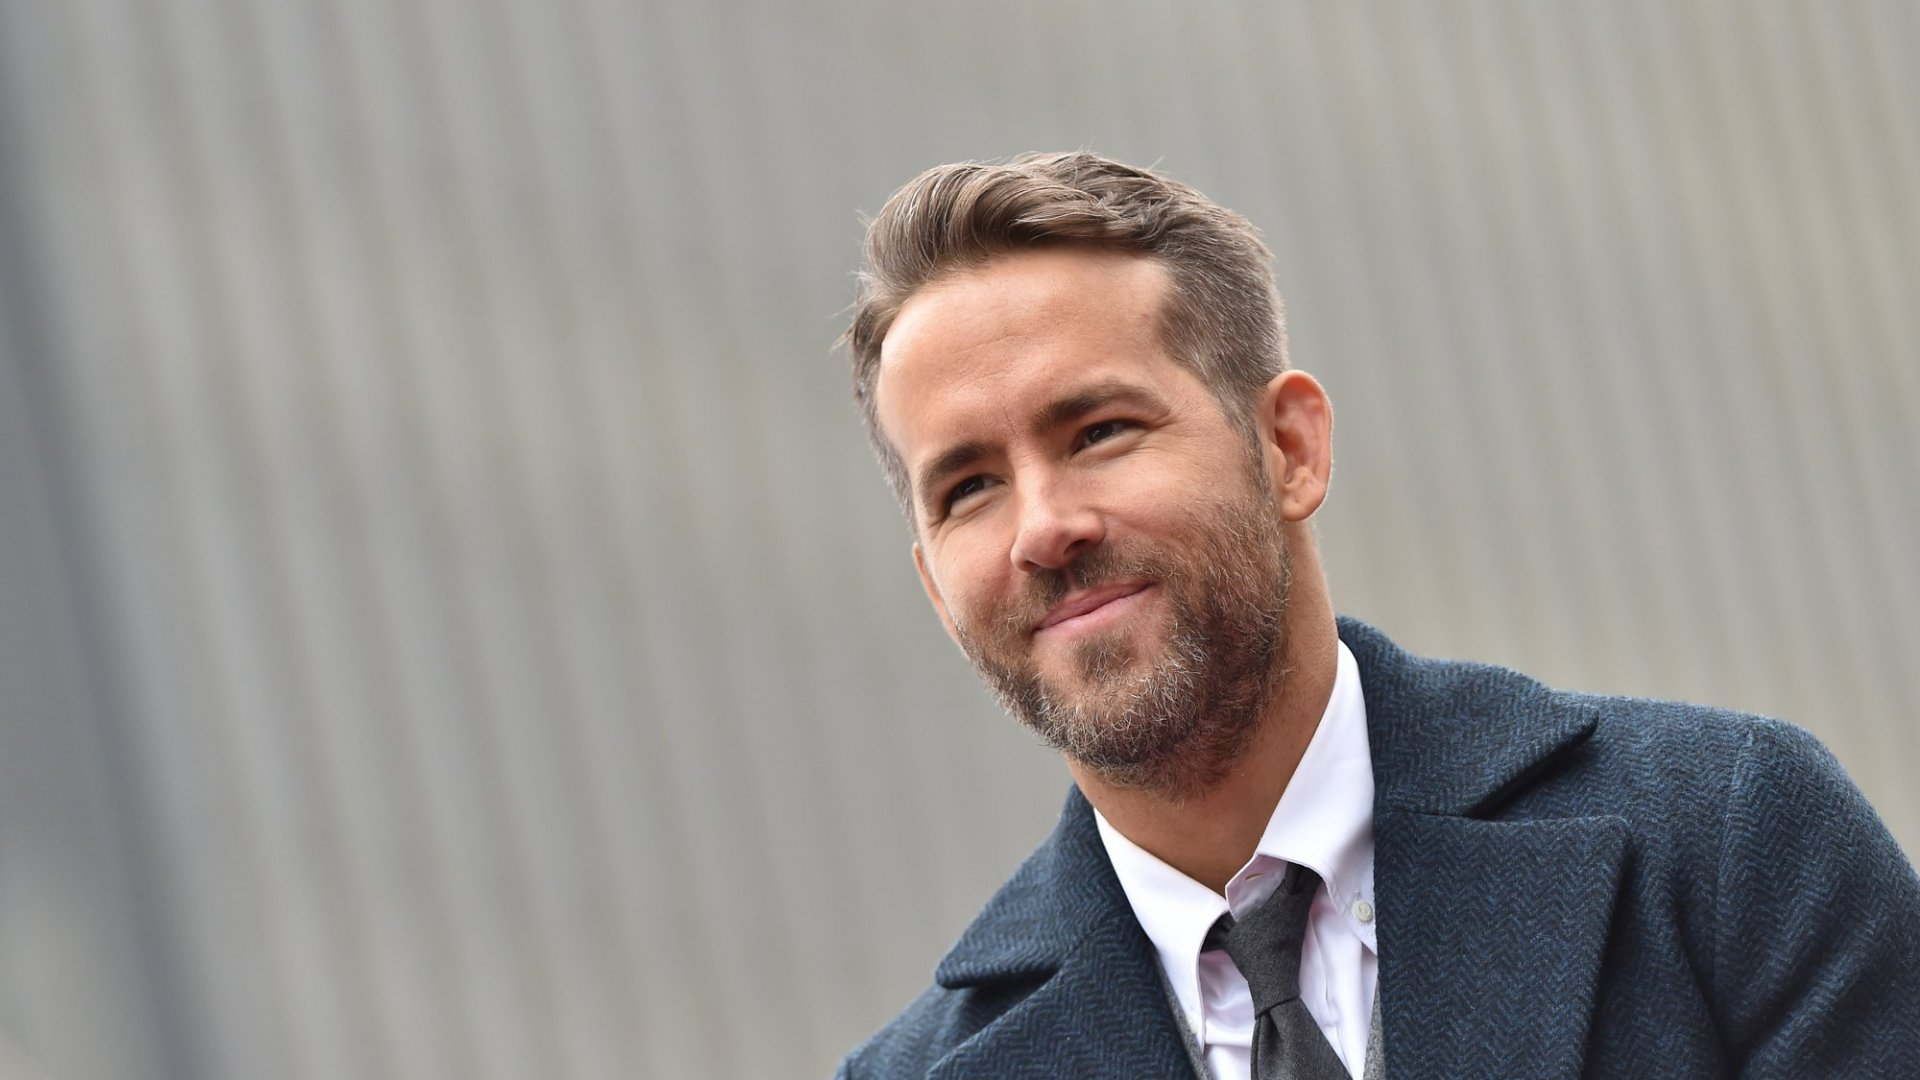 Ryan Reynolds Just Shared His Email Address, and the Out-of-Office Reply He Set Up Is Brilliant